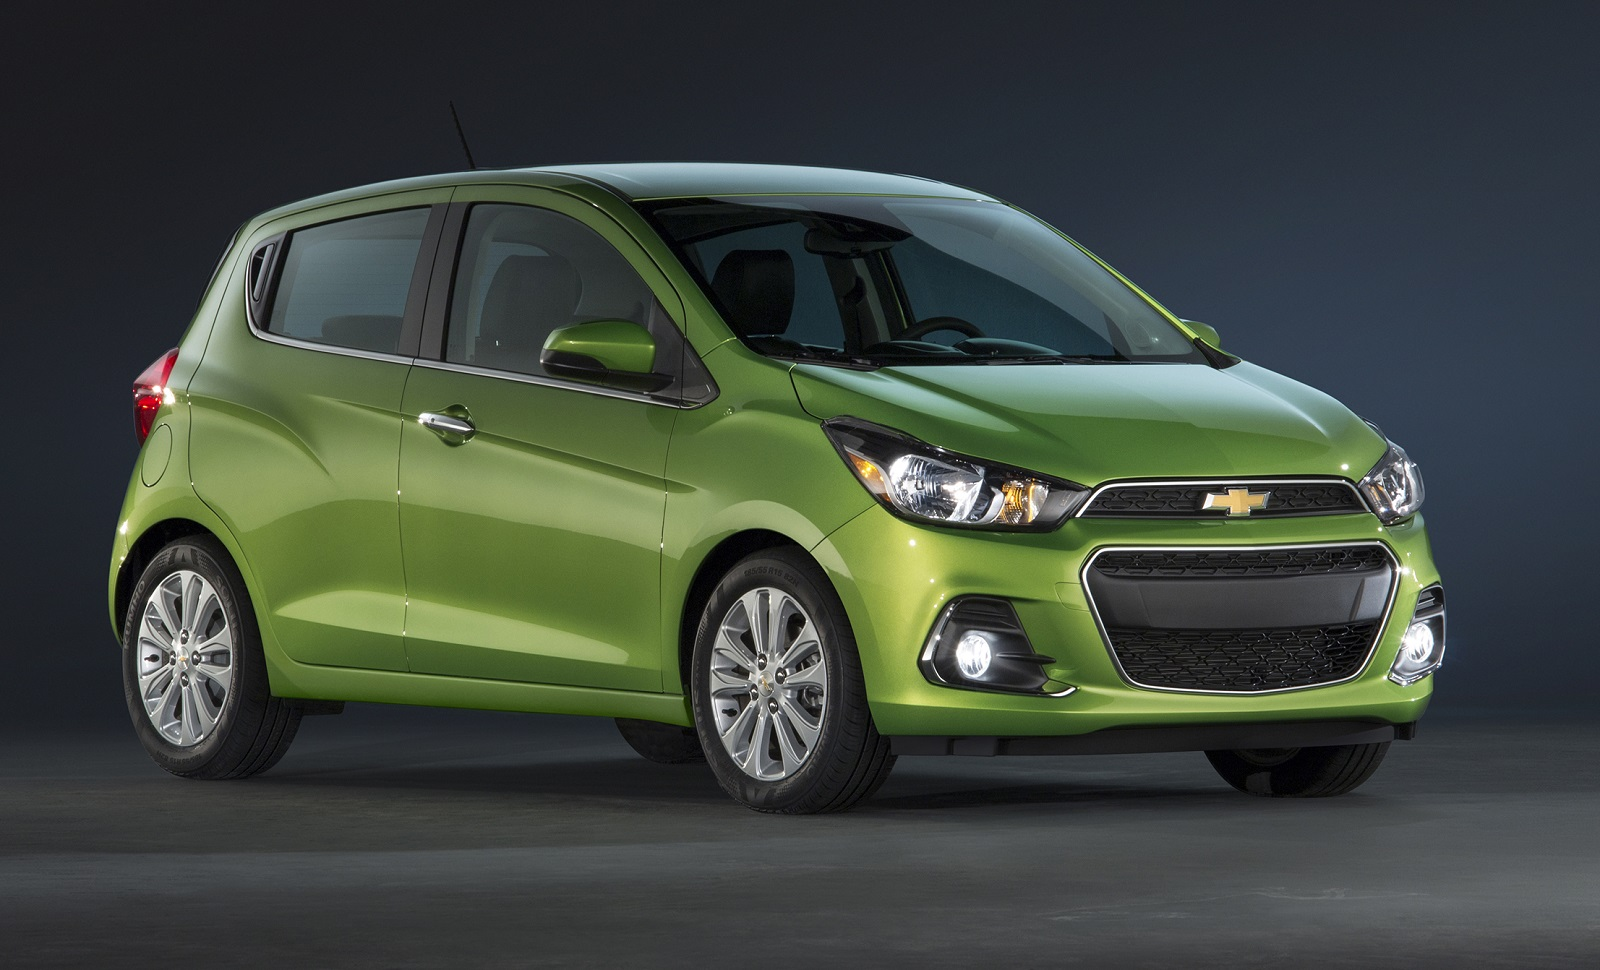 new and used chevrolet spark chevy prices photos reviews specs the car connection. Black Bedroom Furniture Sets. Home Design Ideas